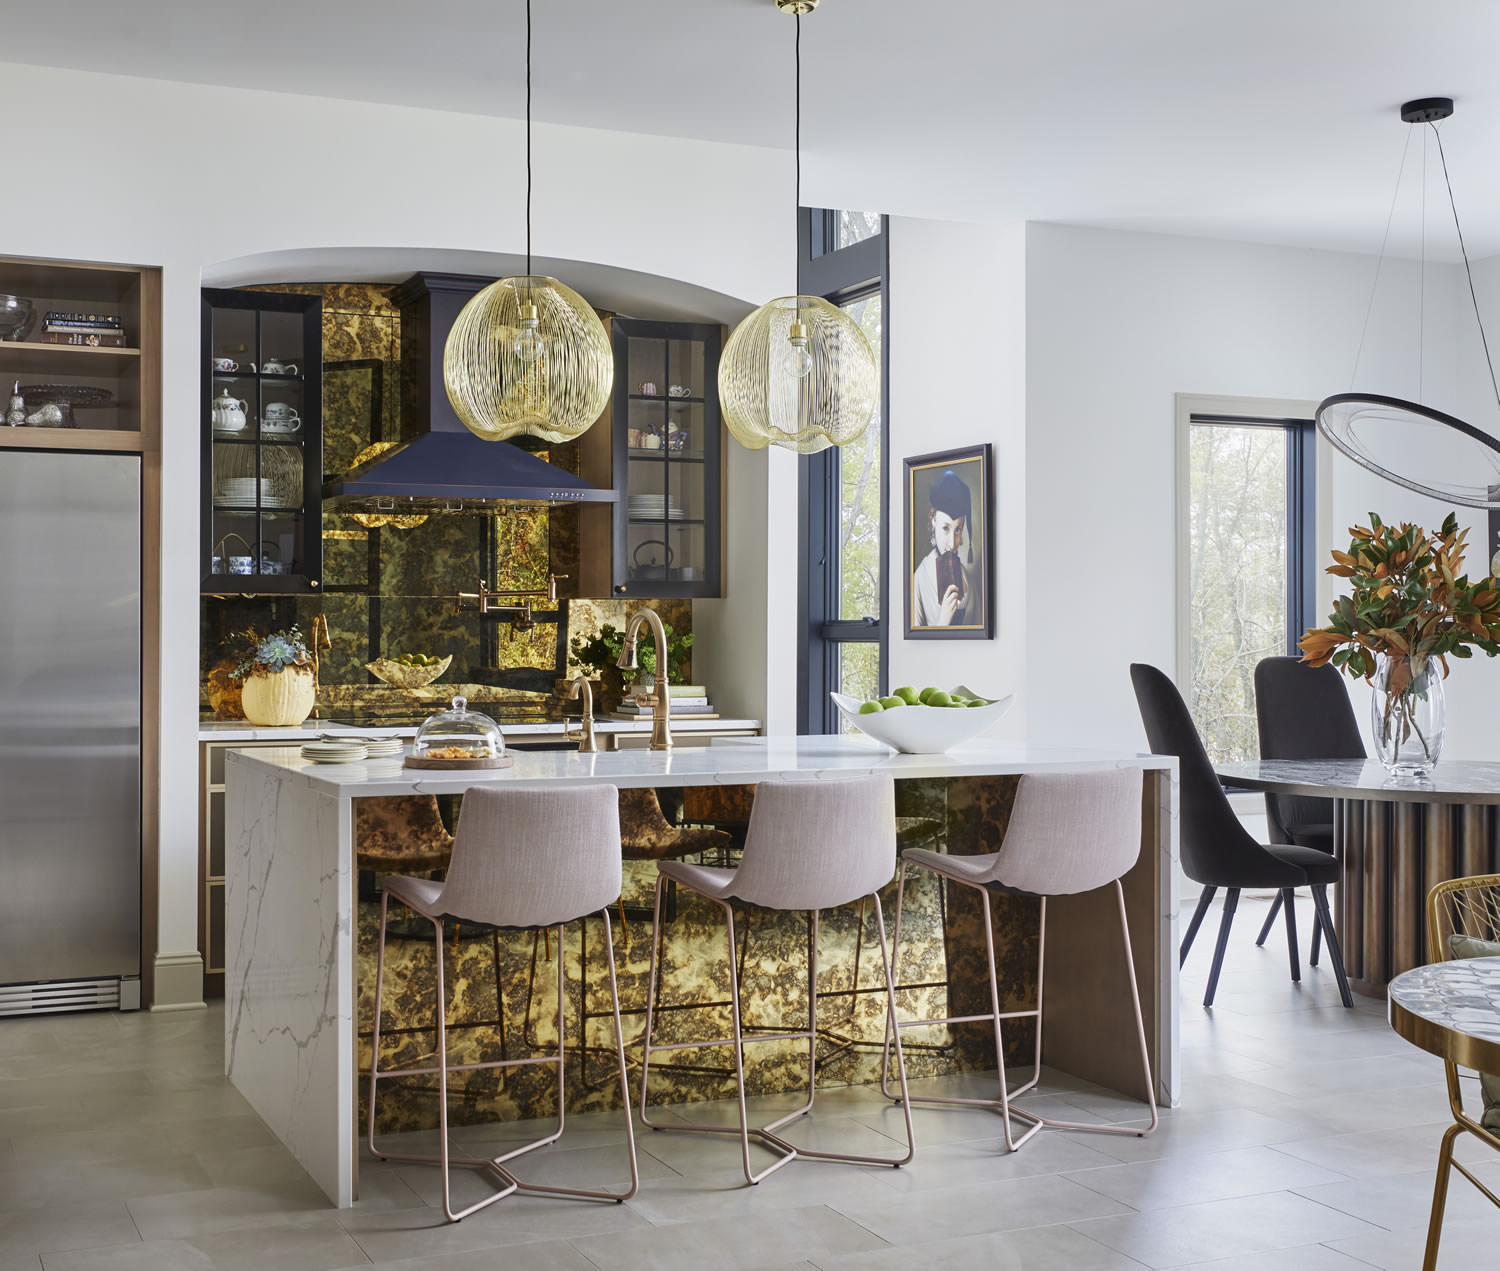 YOUR 4 WALLS: Interior Design Guide by Room – Kitchen